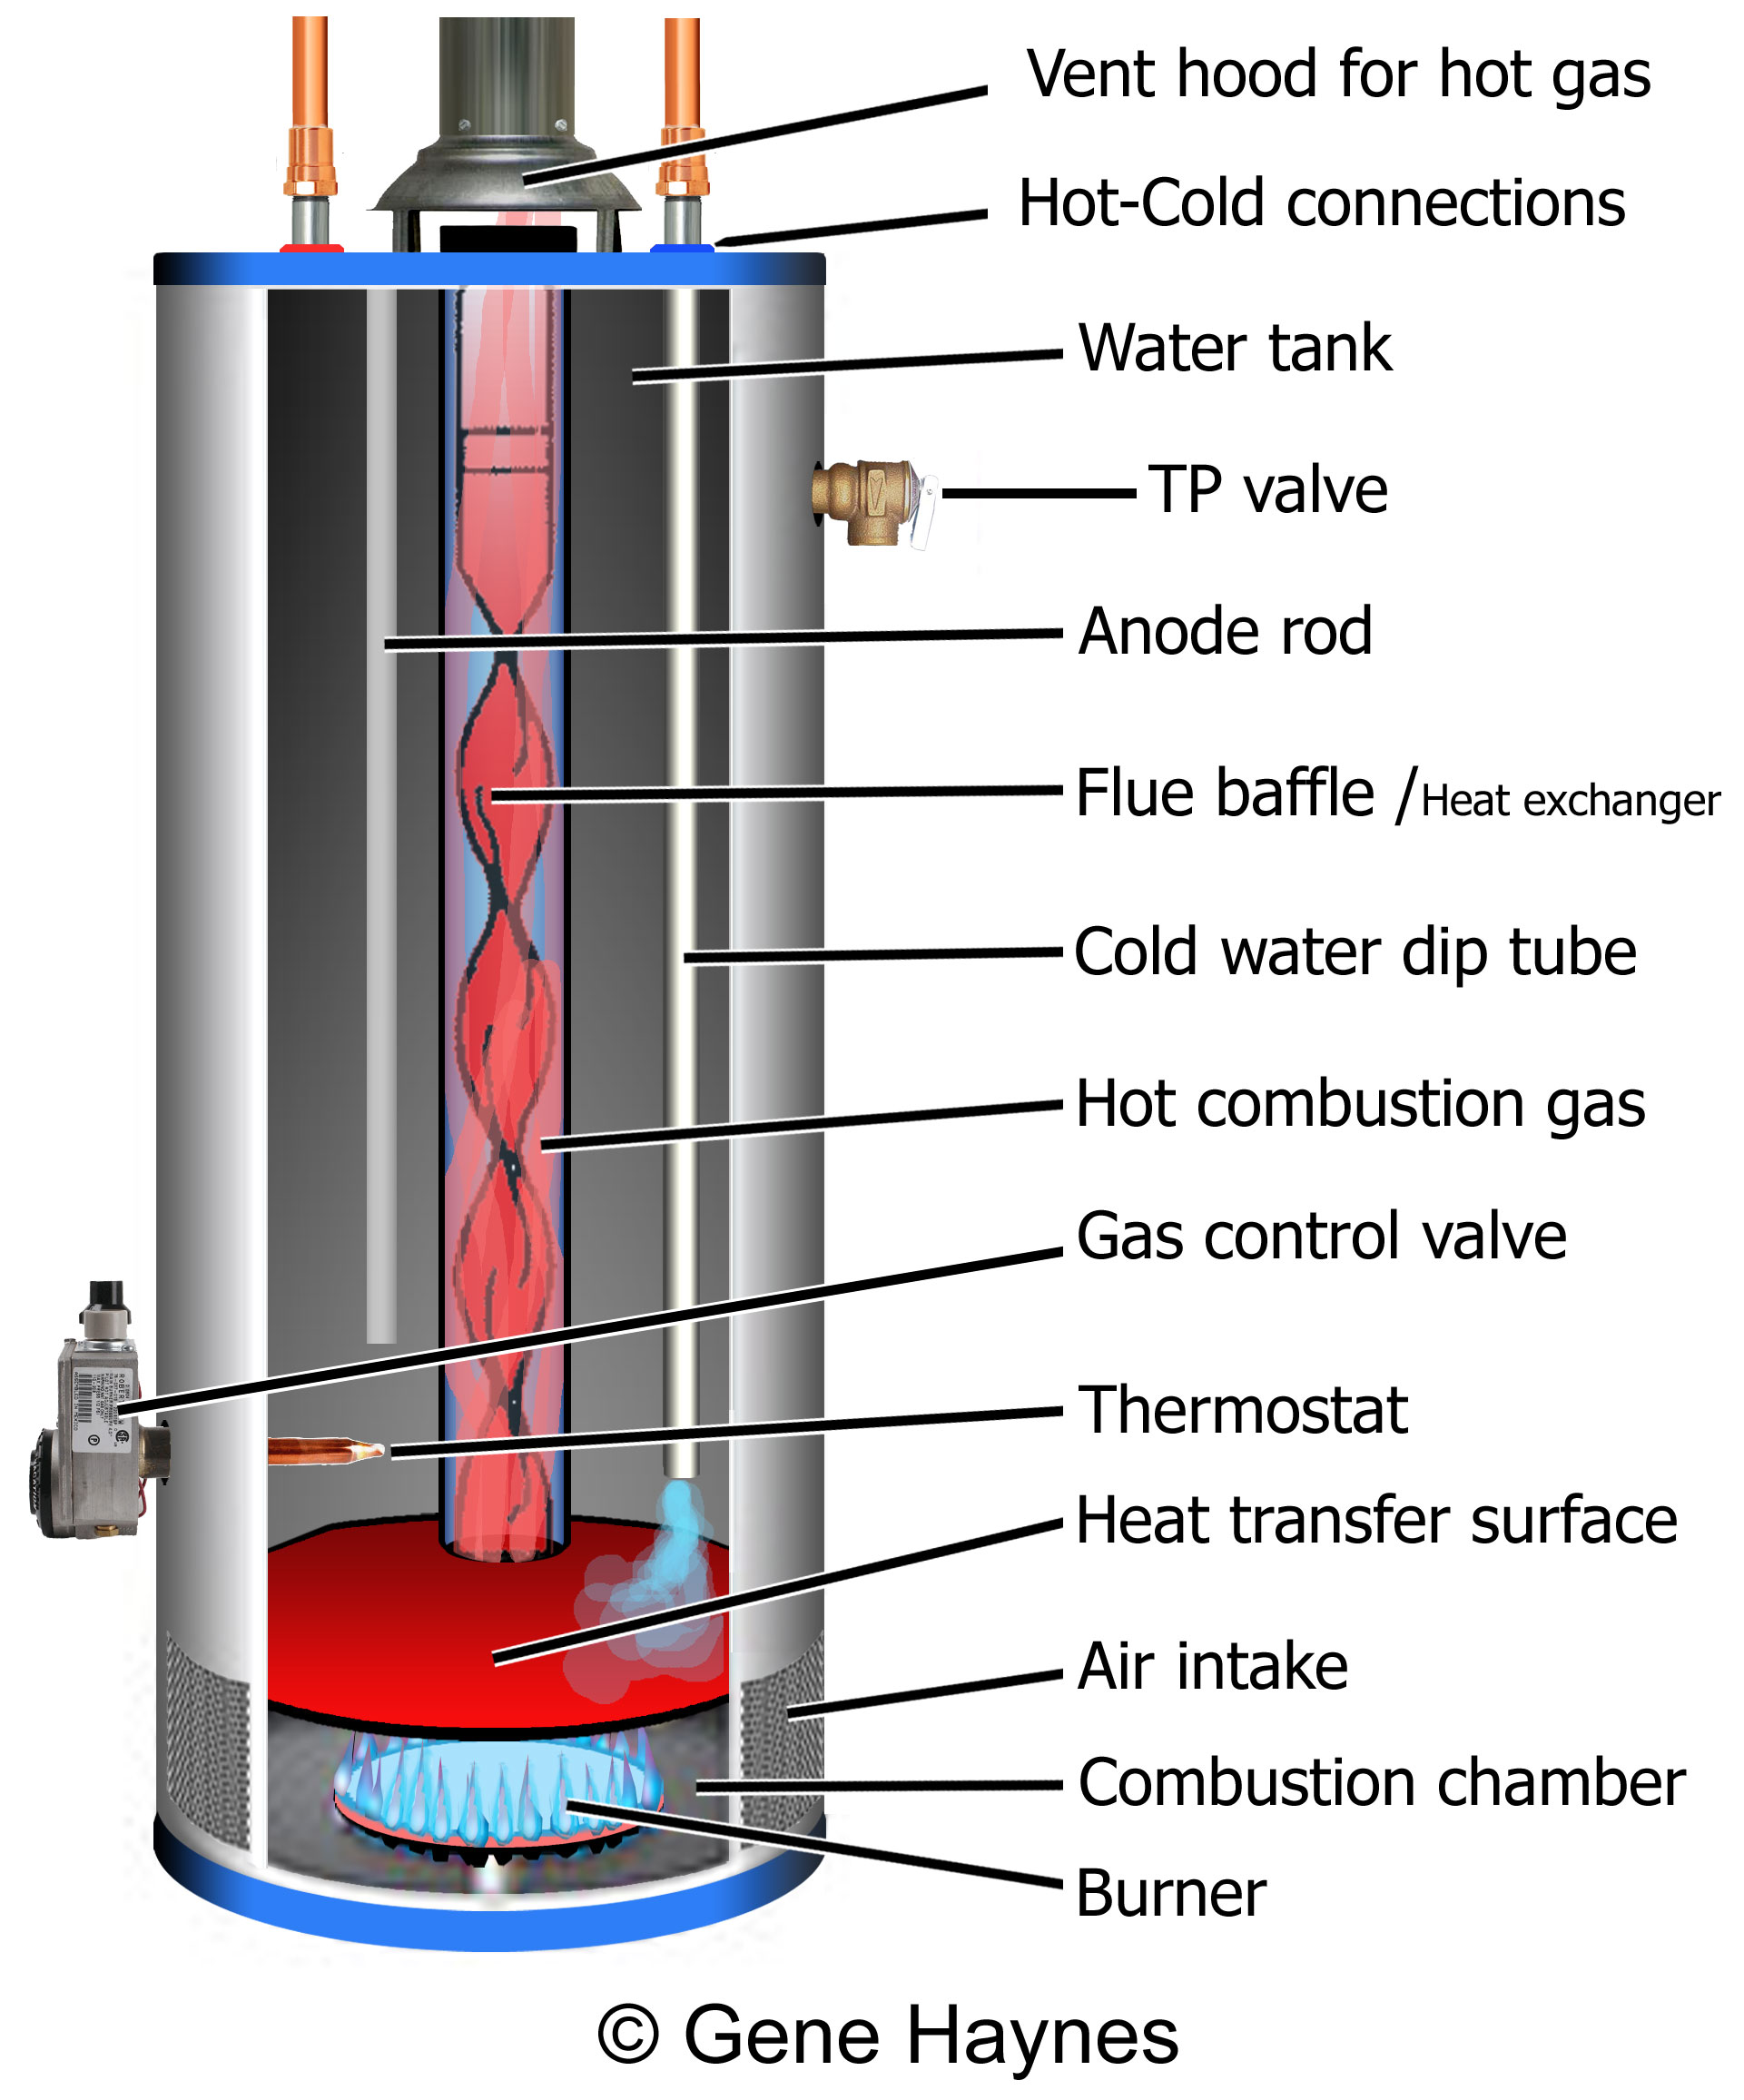 How to vent a hot water heater - Gas Water Heaters Are Not 100 Standardized Models Vary Manufacturers Offer Different Designs Parts Not Shown On Illustration Include Electronic Gas